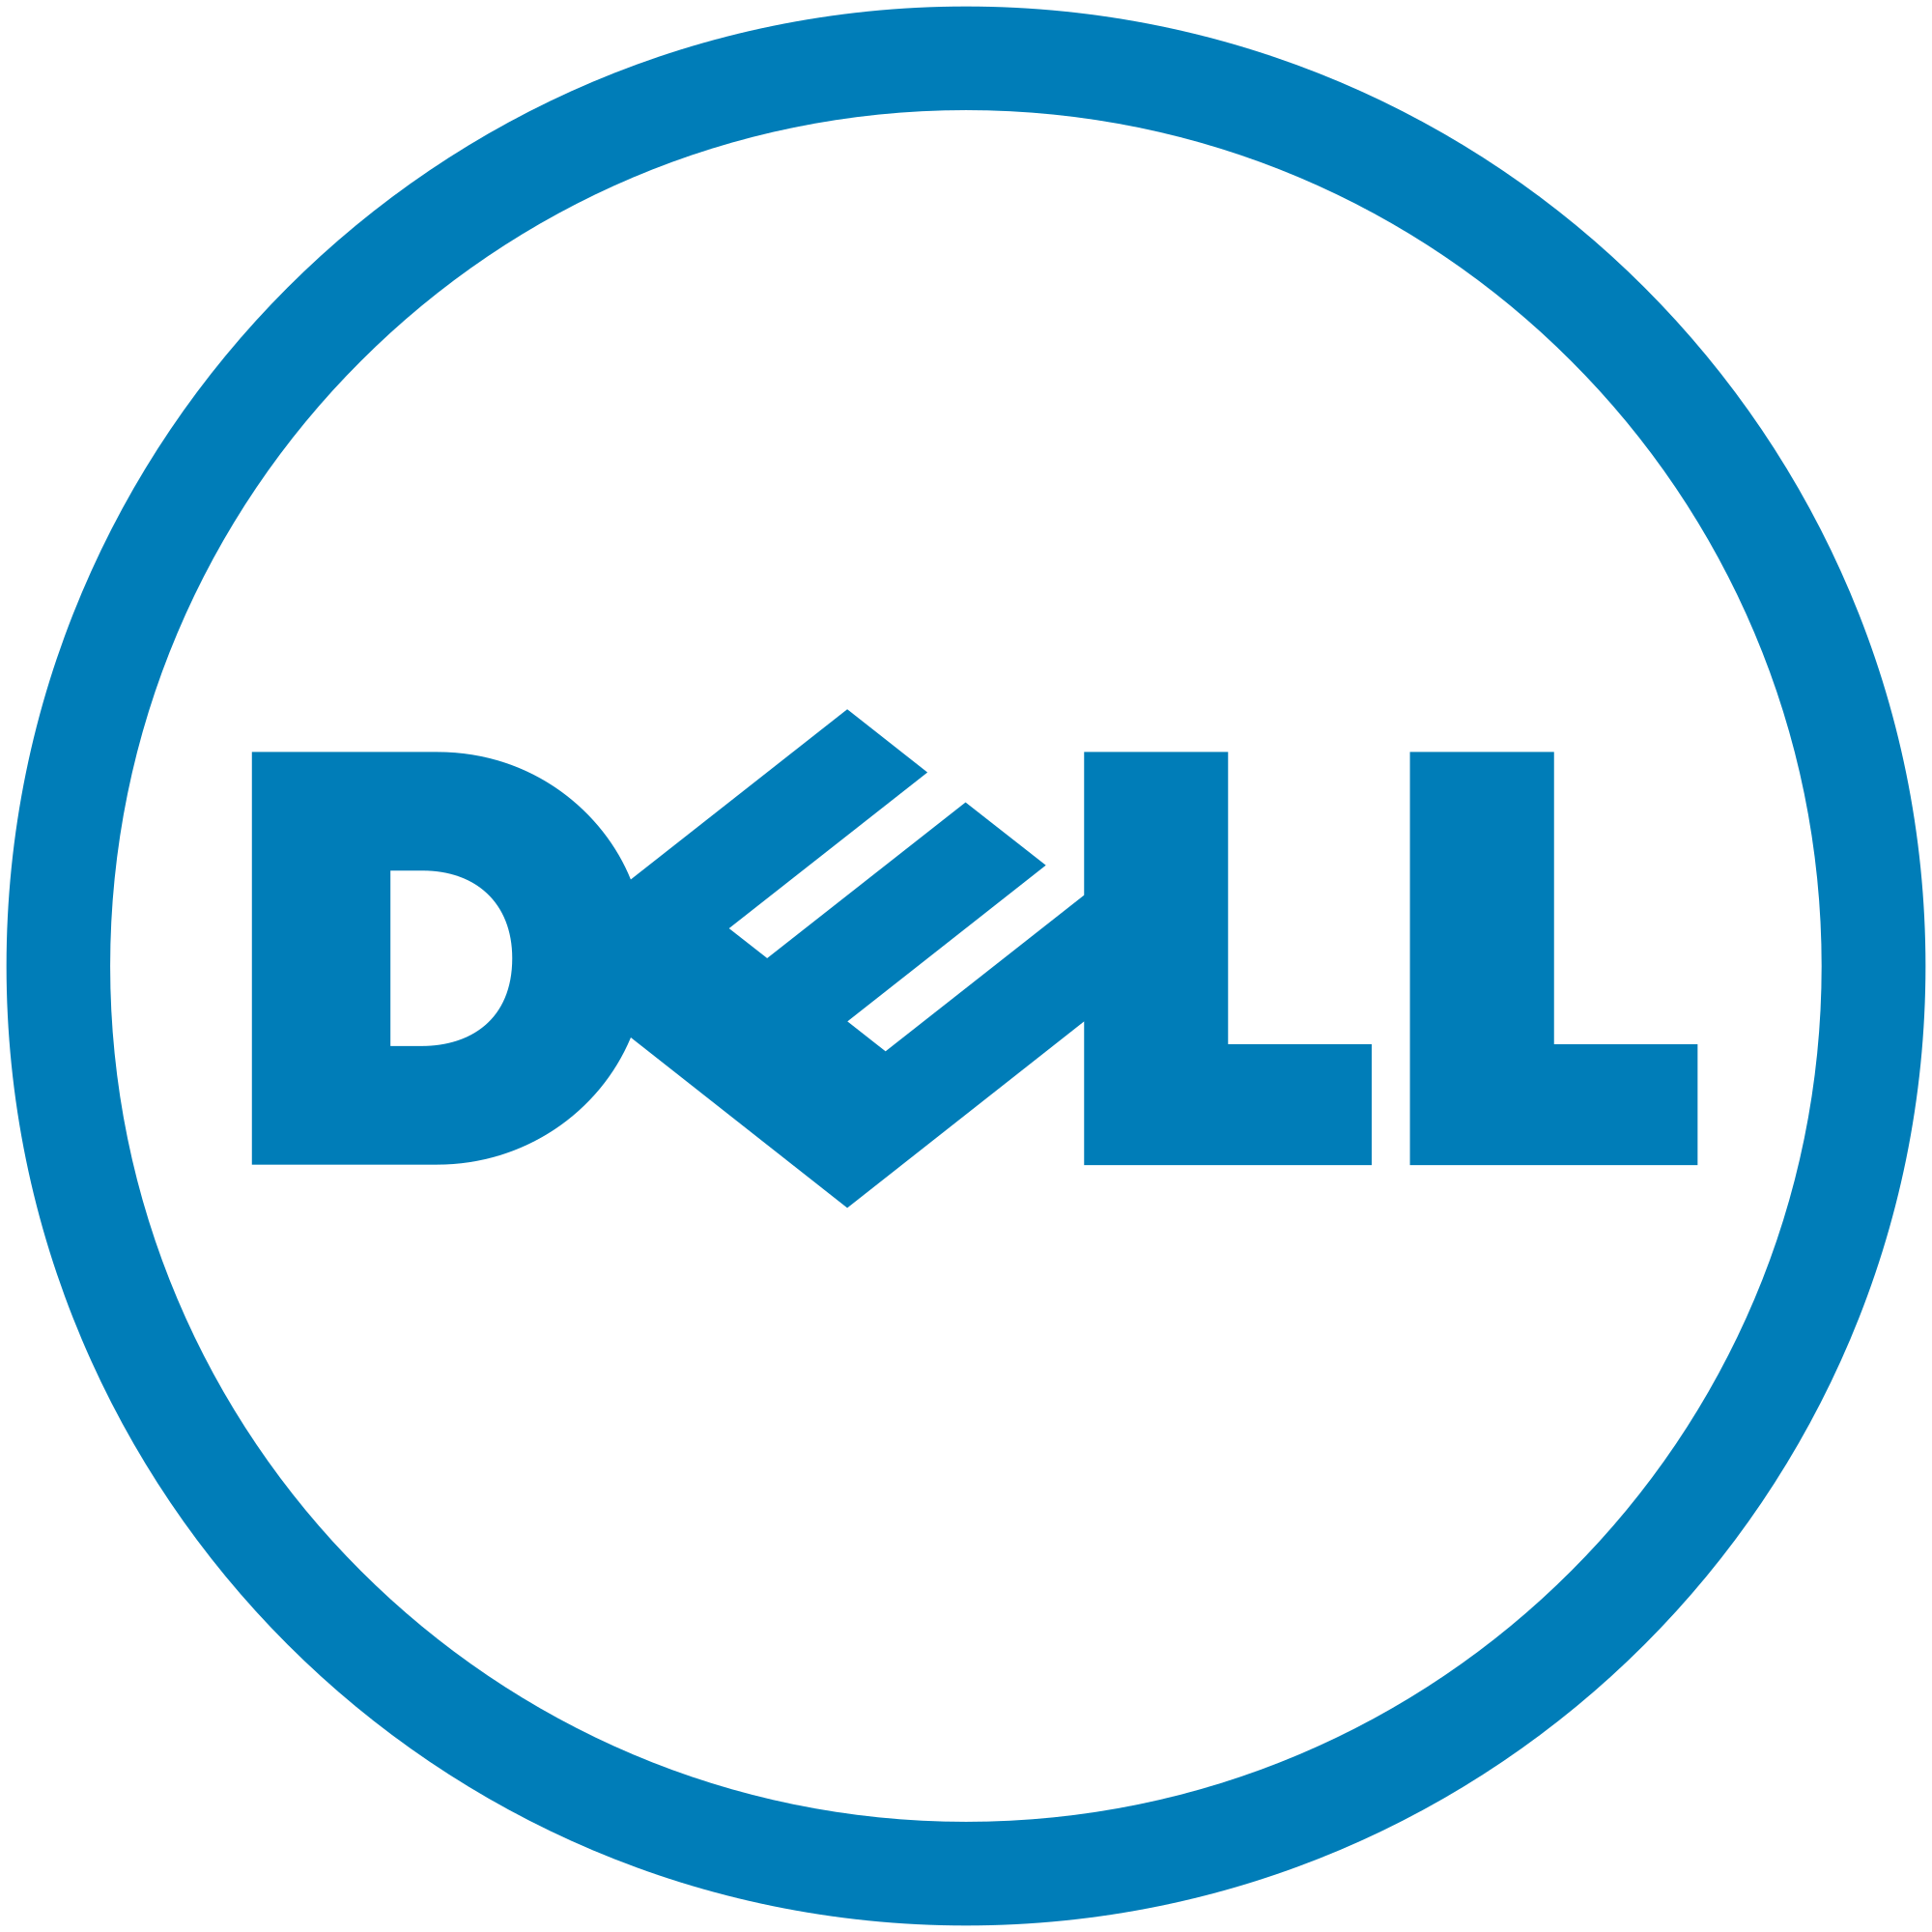 Cyber Monday Doorbuster, save 51% on a Dell Laptop! Vostro 5391 with i5 processor, 8GB memory, 256GB HDD storage, and Windows10 Pro. Only $599 with free shipping.